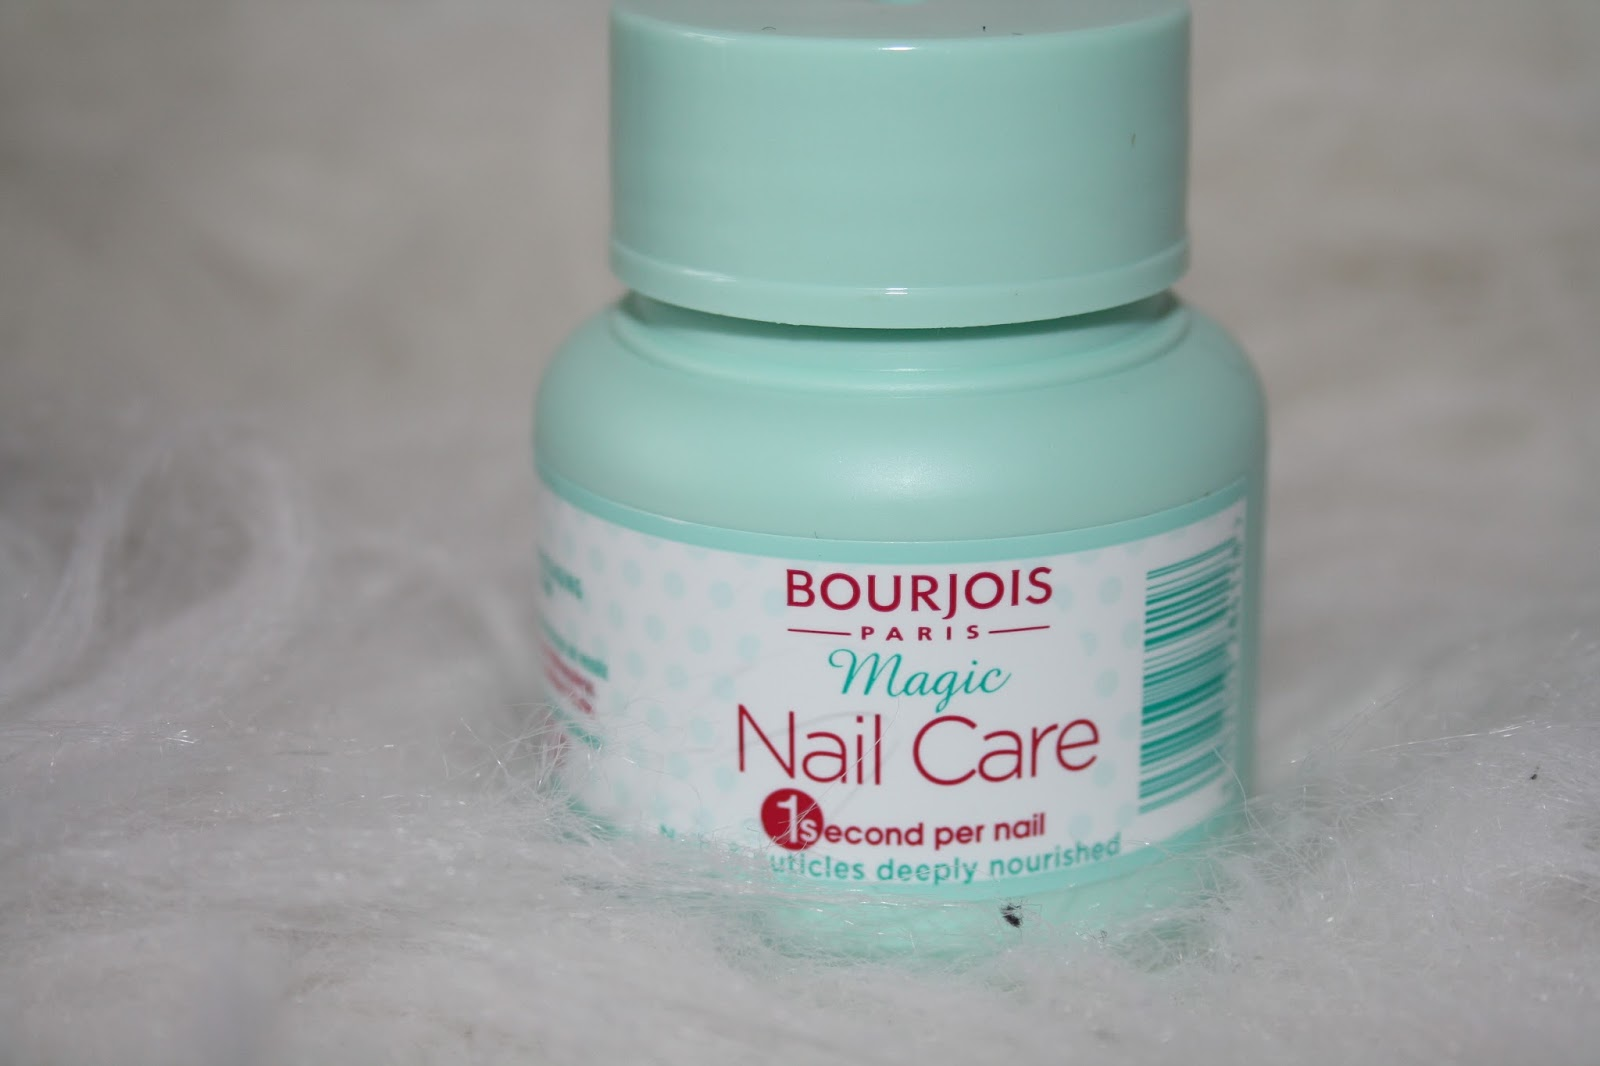 Bourjois SS15 New Launches